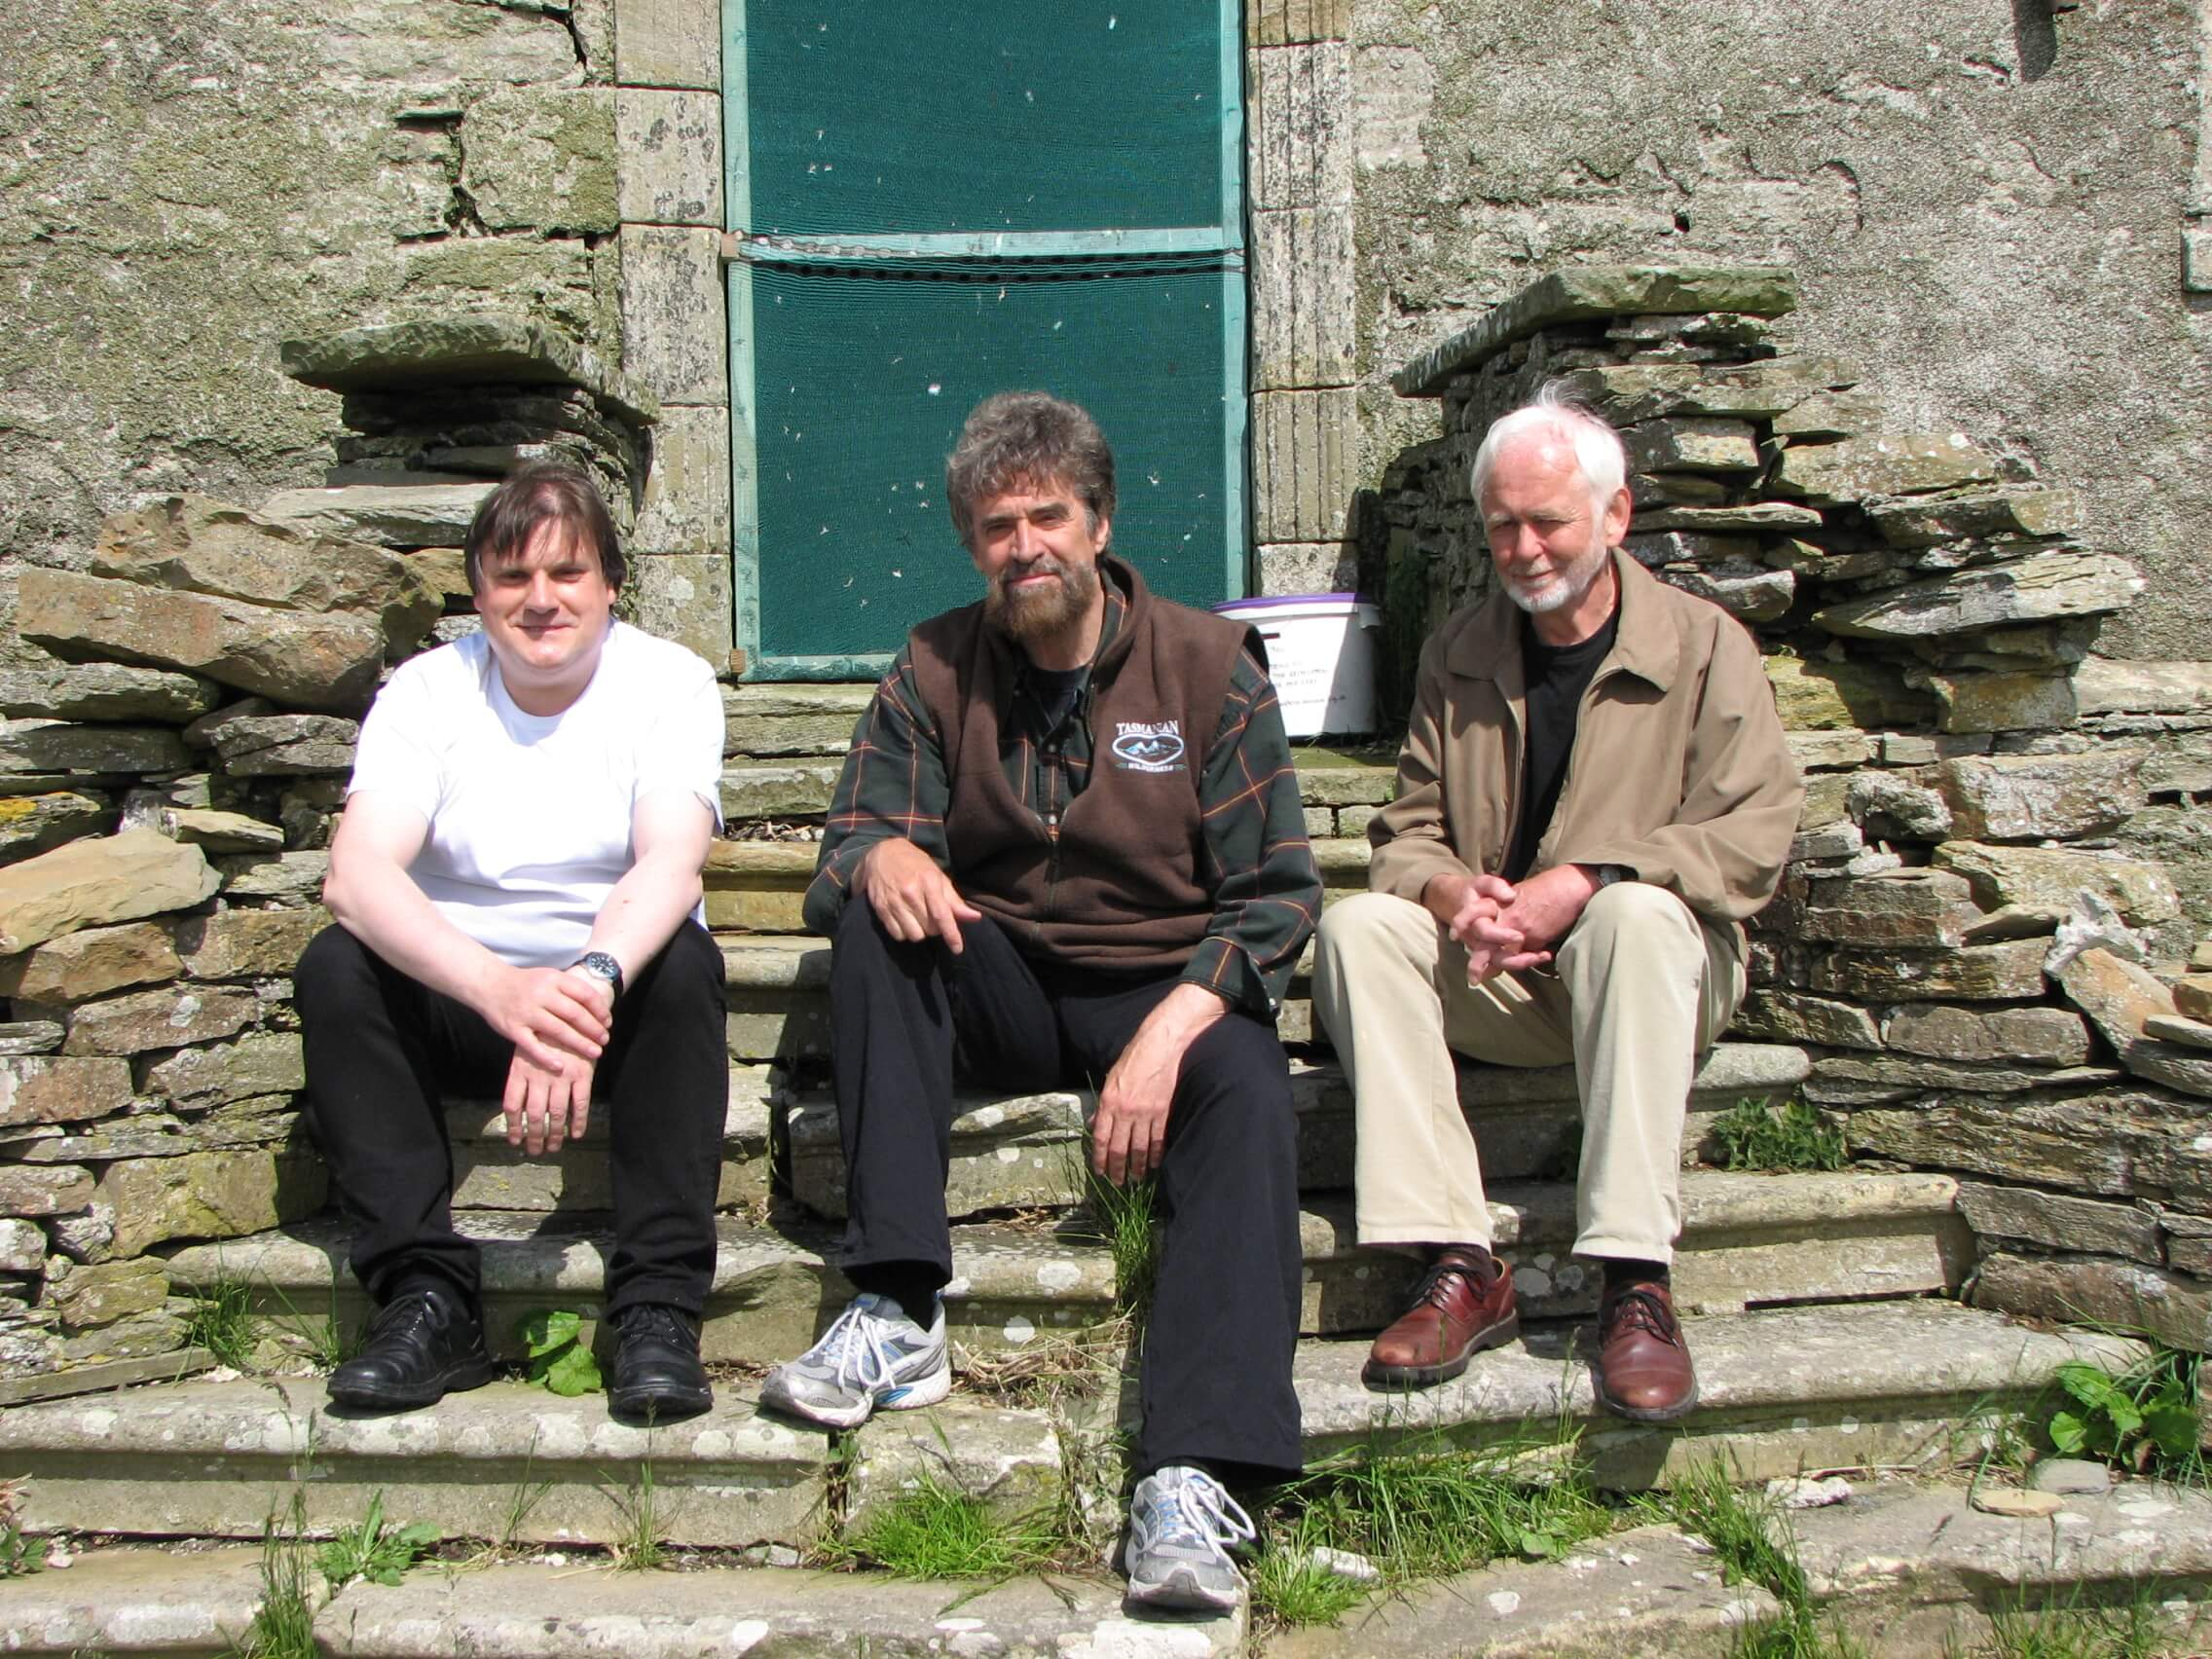 Authors Tom Muir, Ken McGoogan and Bryce Wilson - longtime champions of Rae at Rae's birthplace, the Hall of Clestrain